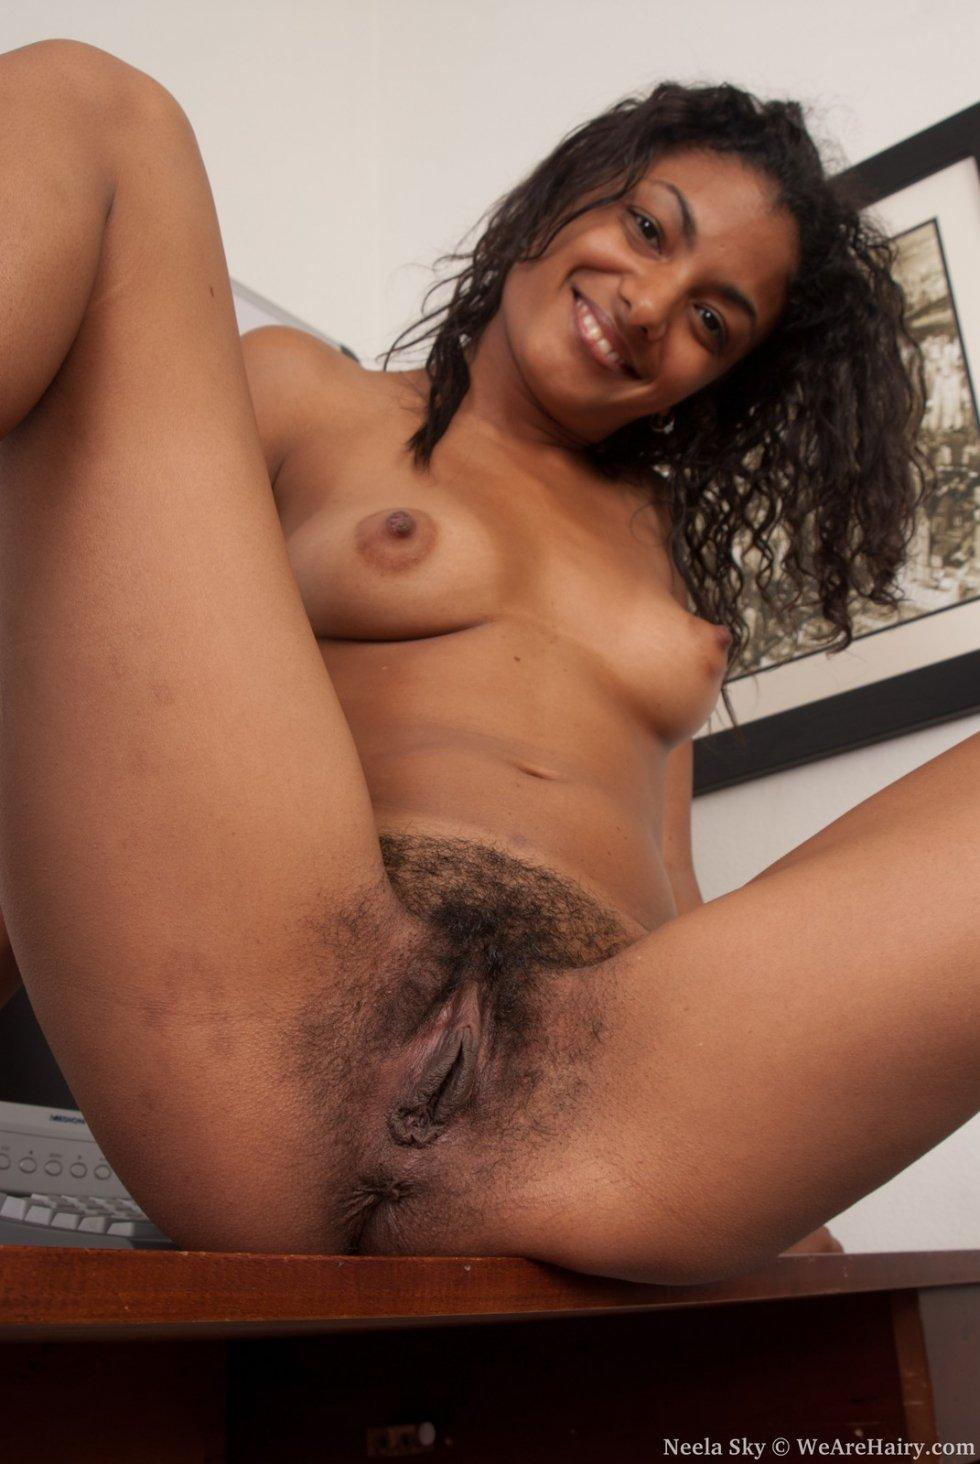 Naked hairy girl videos